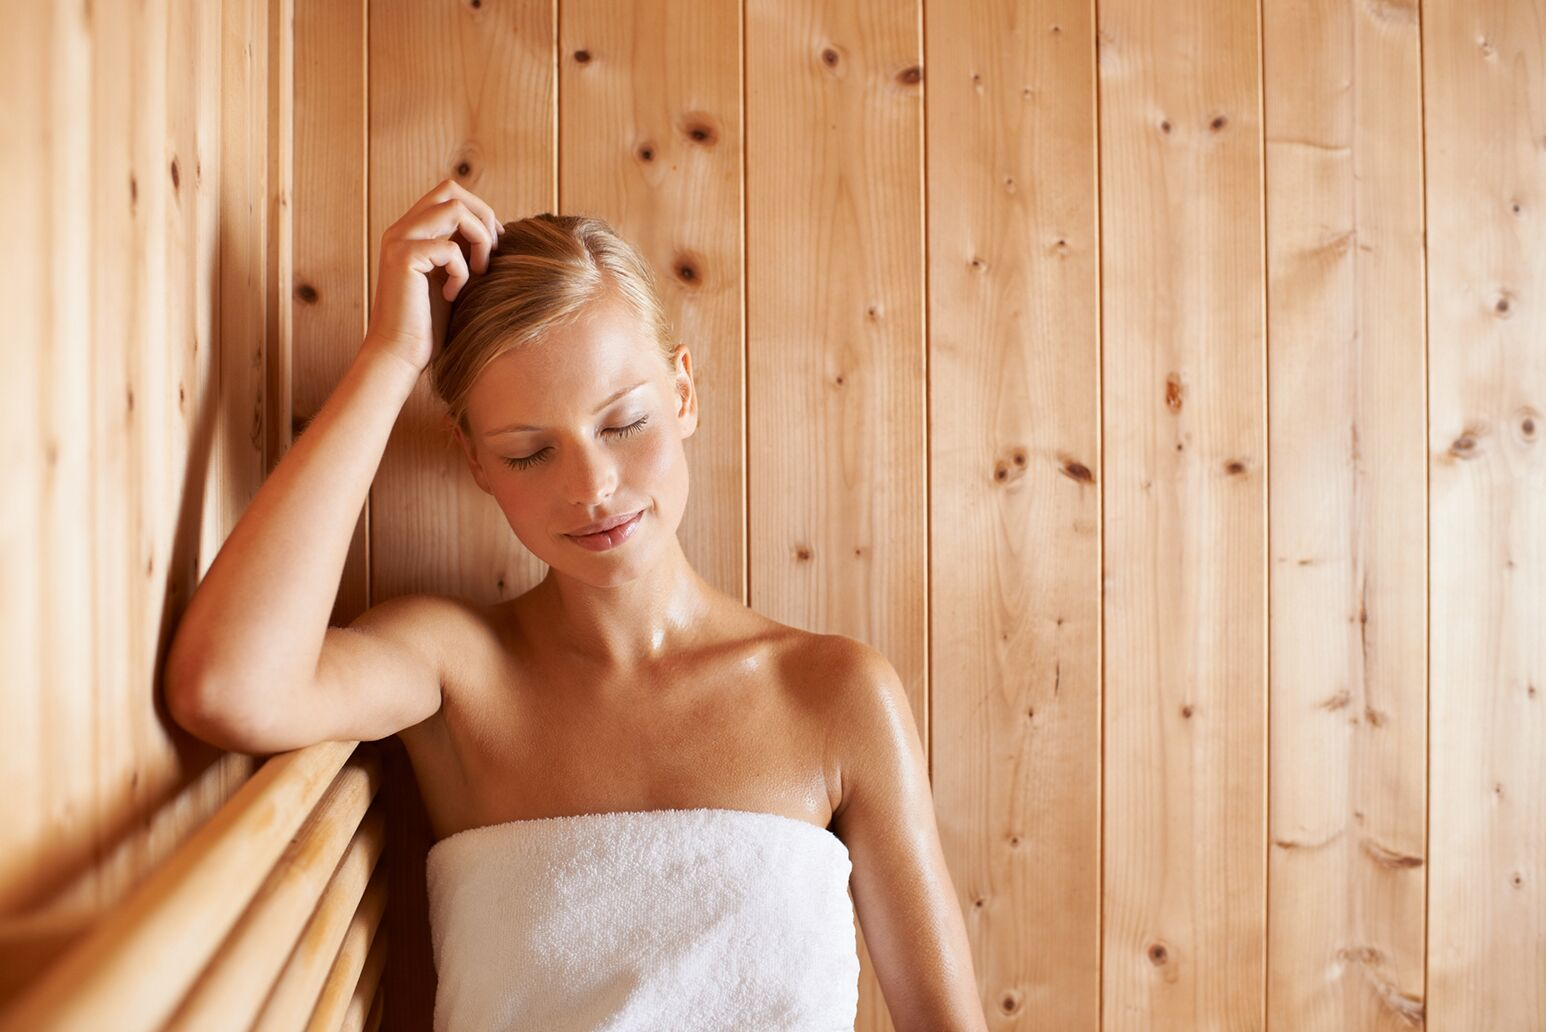 A woman in a sauna